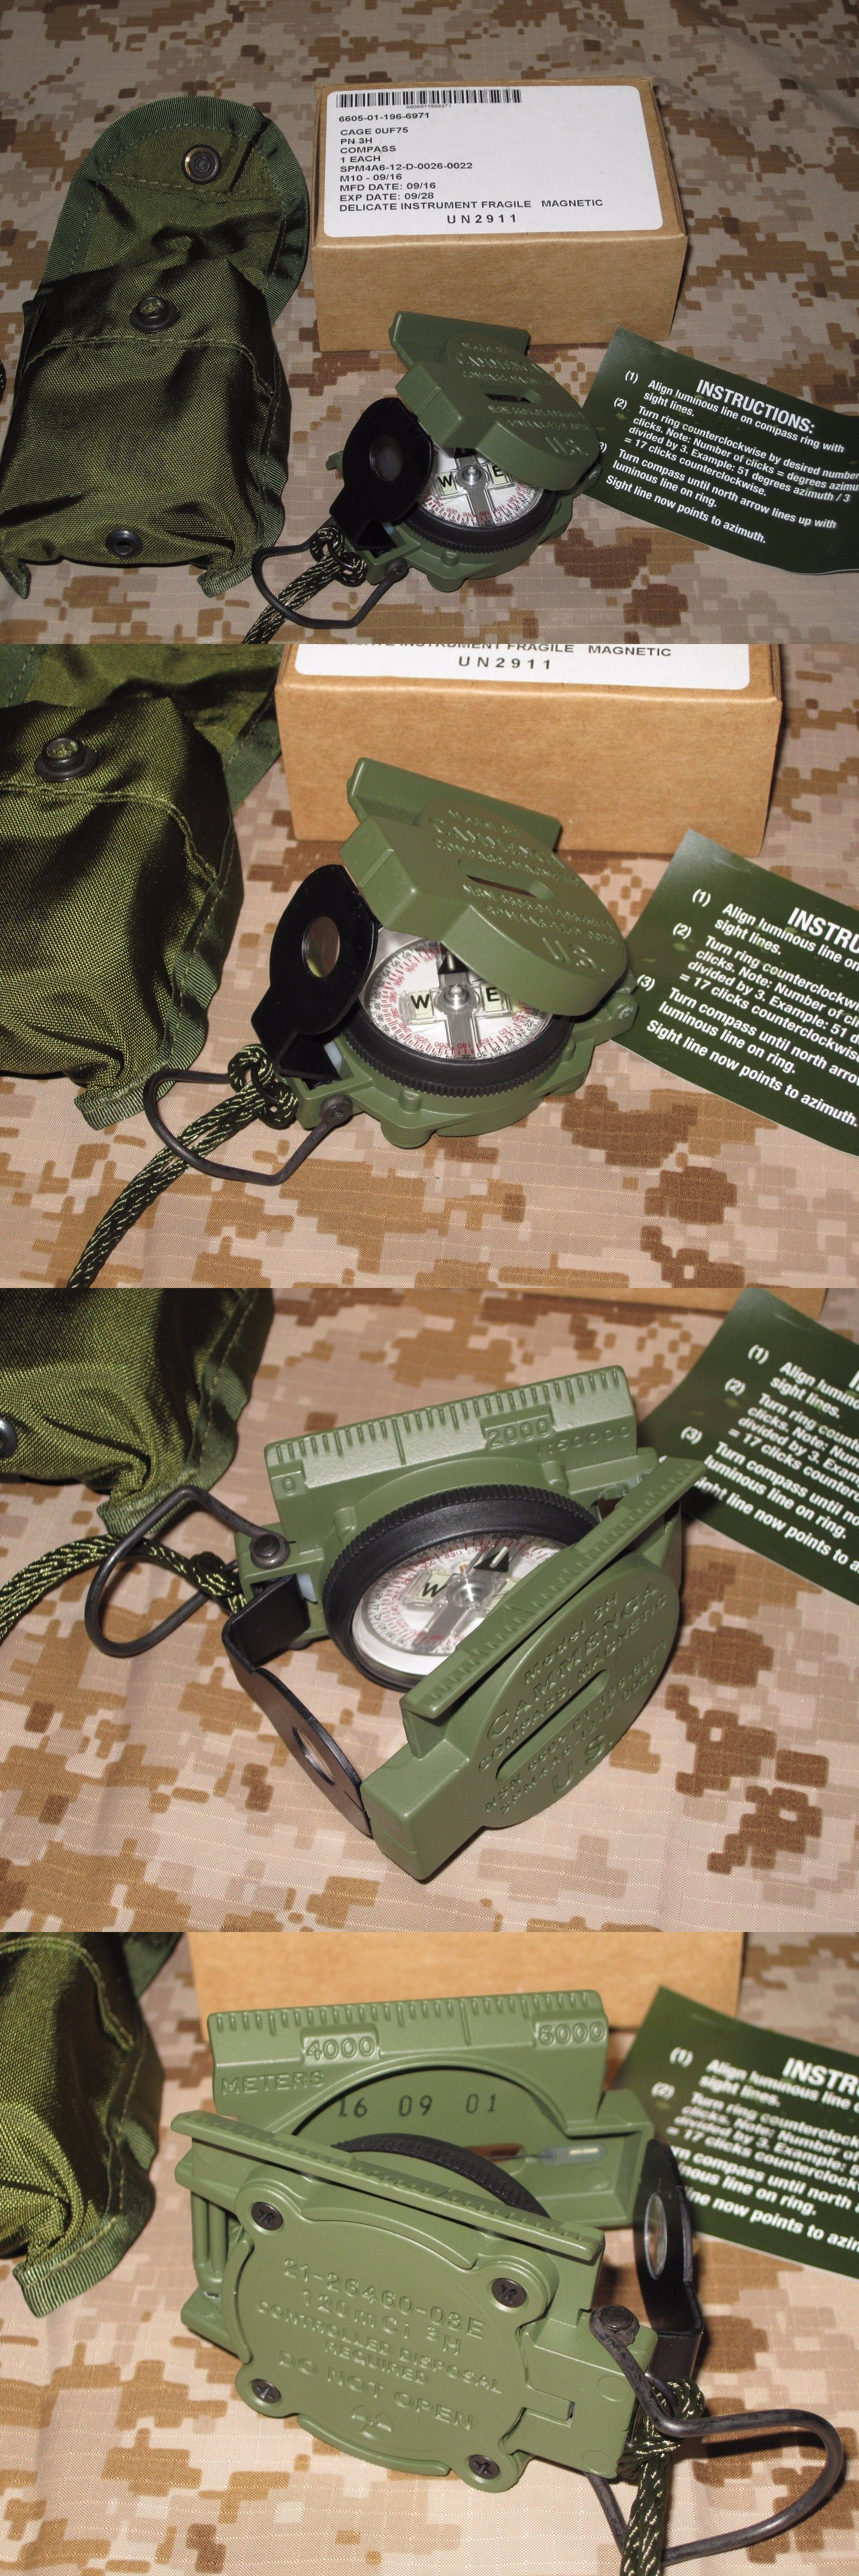 passes and GPS New Usgi Military Issue Marching pass Cammenga Model 3 H